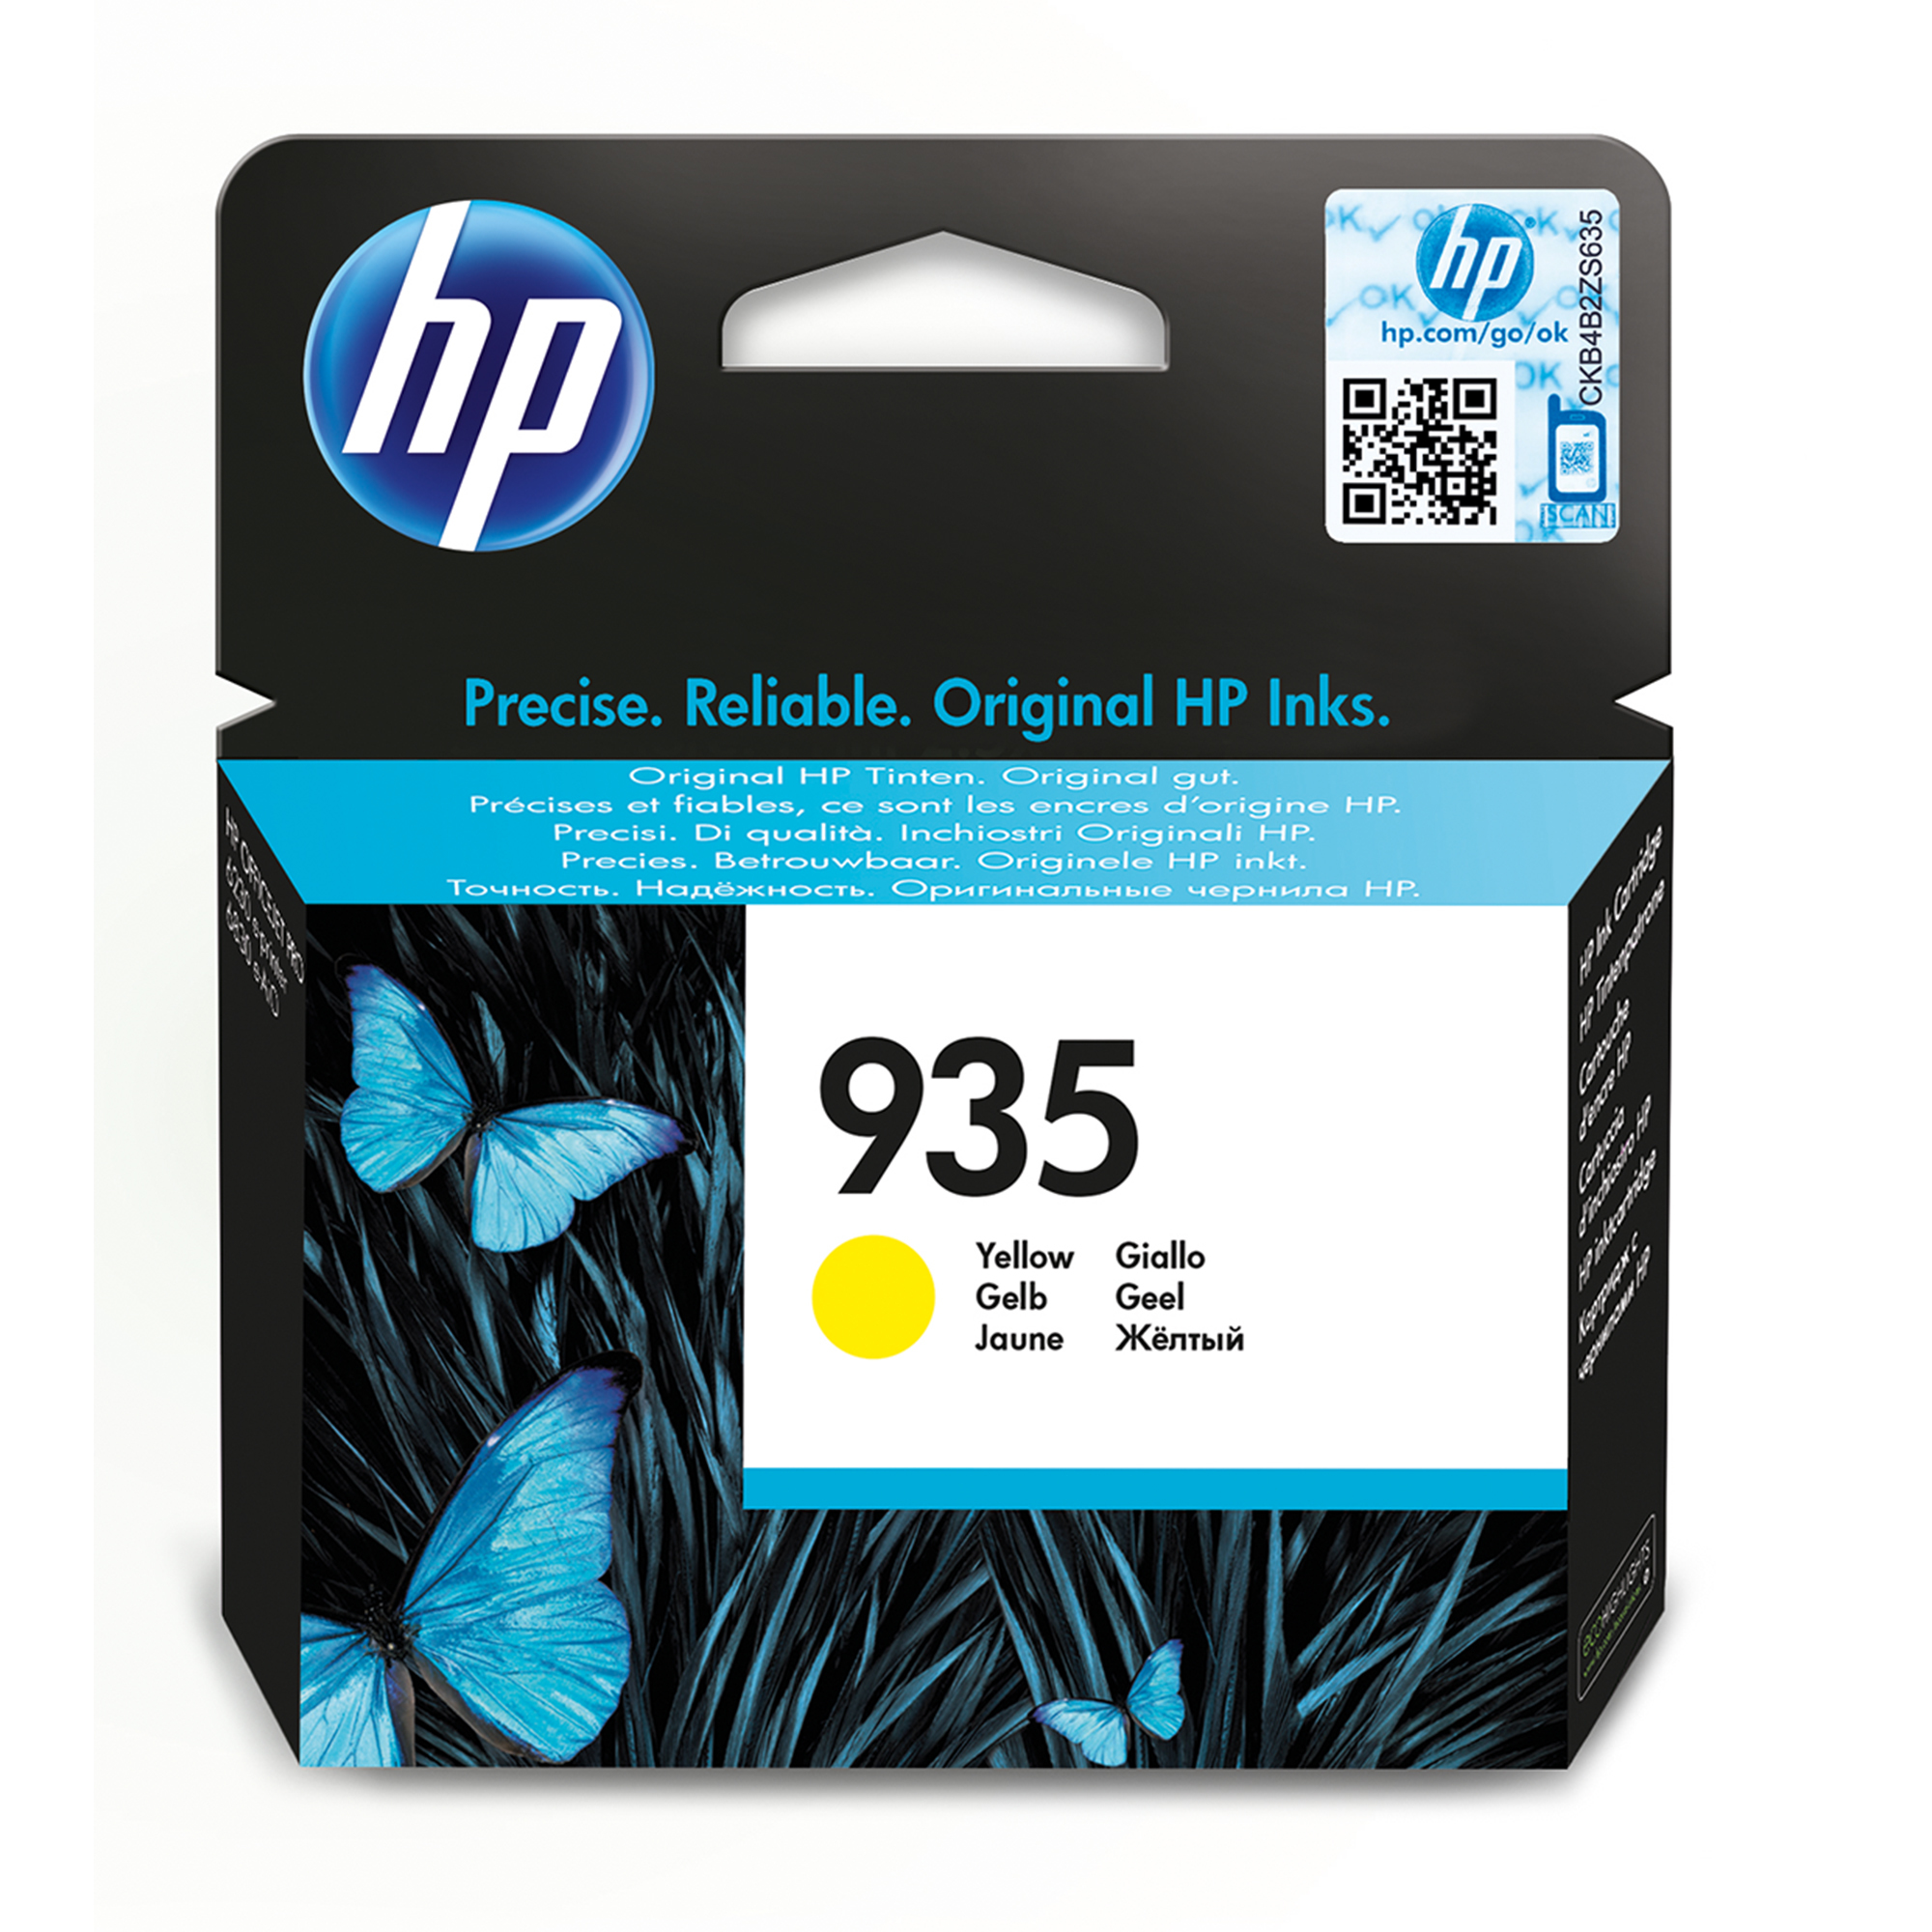 HP Hp 935 Yellow Ink Cartridge C2p22ae - AD01